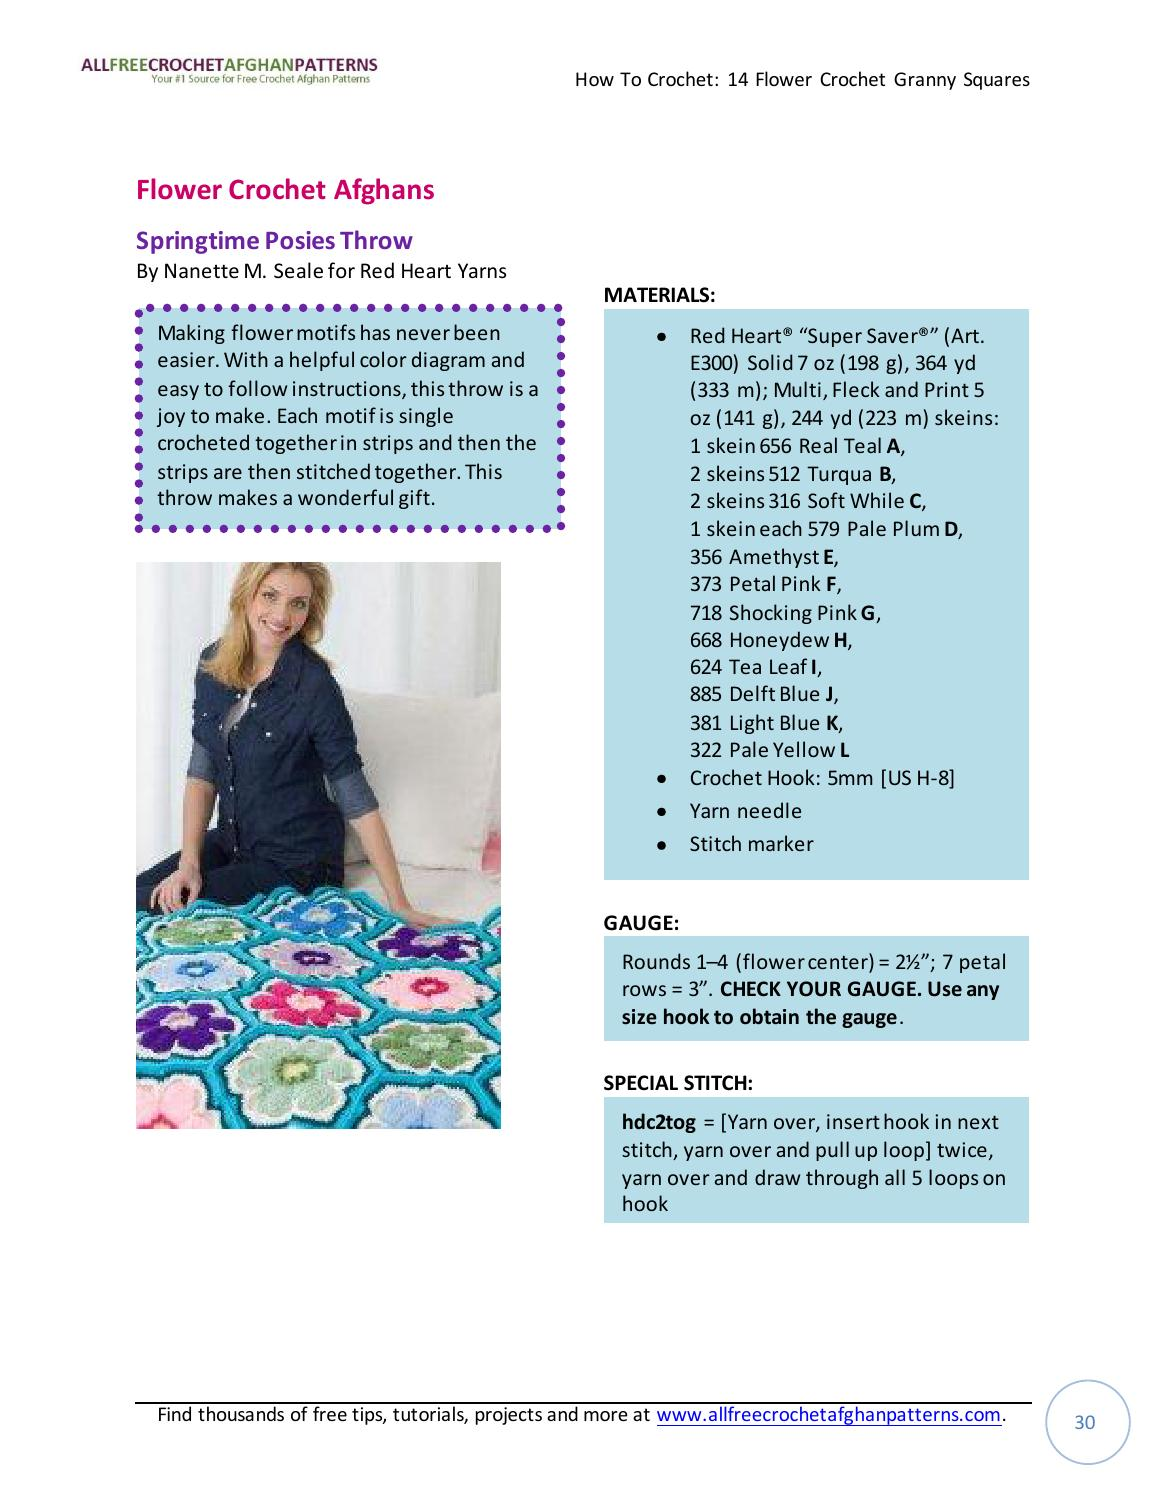 How To Crochet 14 Flower Granny Squares By Jasmina Sizz Issuu Single Diagram